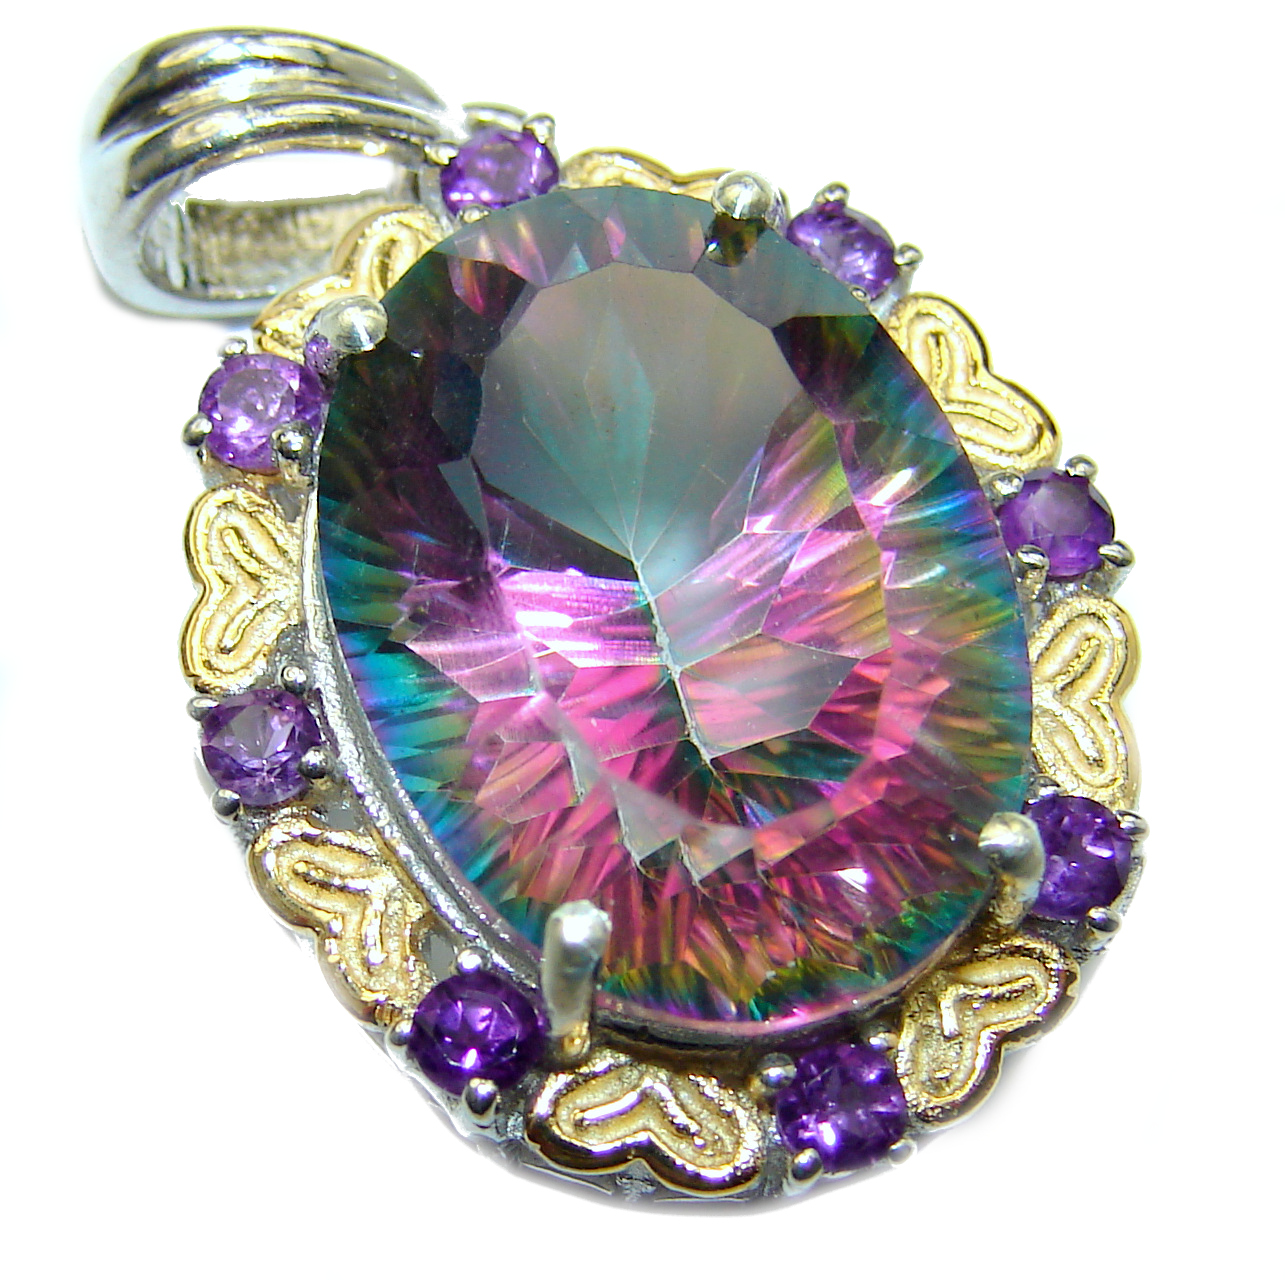 Spectacular Magic Topaz two tones .925 Sterling Silver handcrafted Pendant